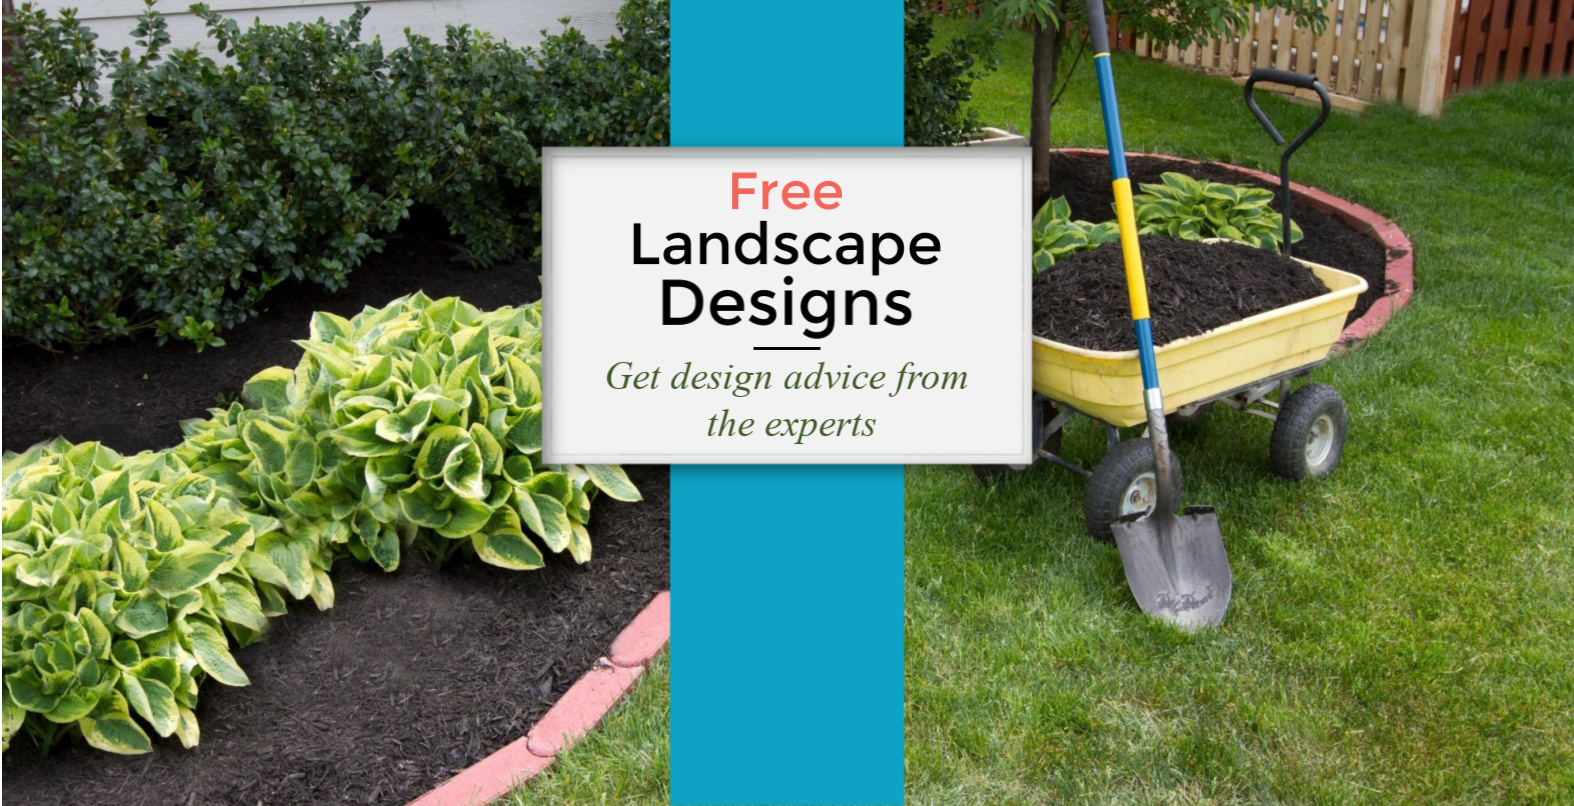 Free Landscape Designs newest